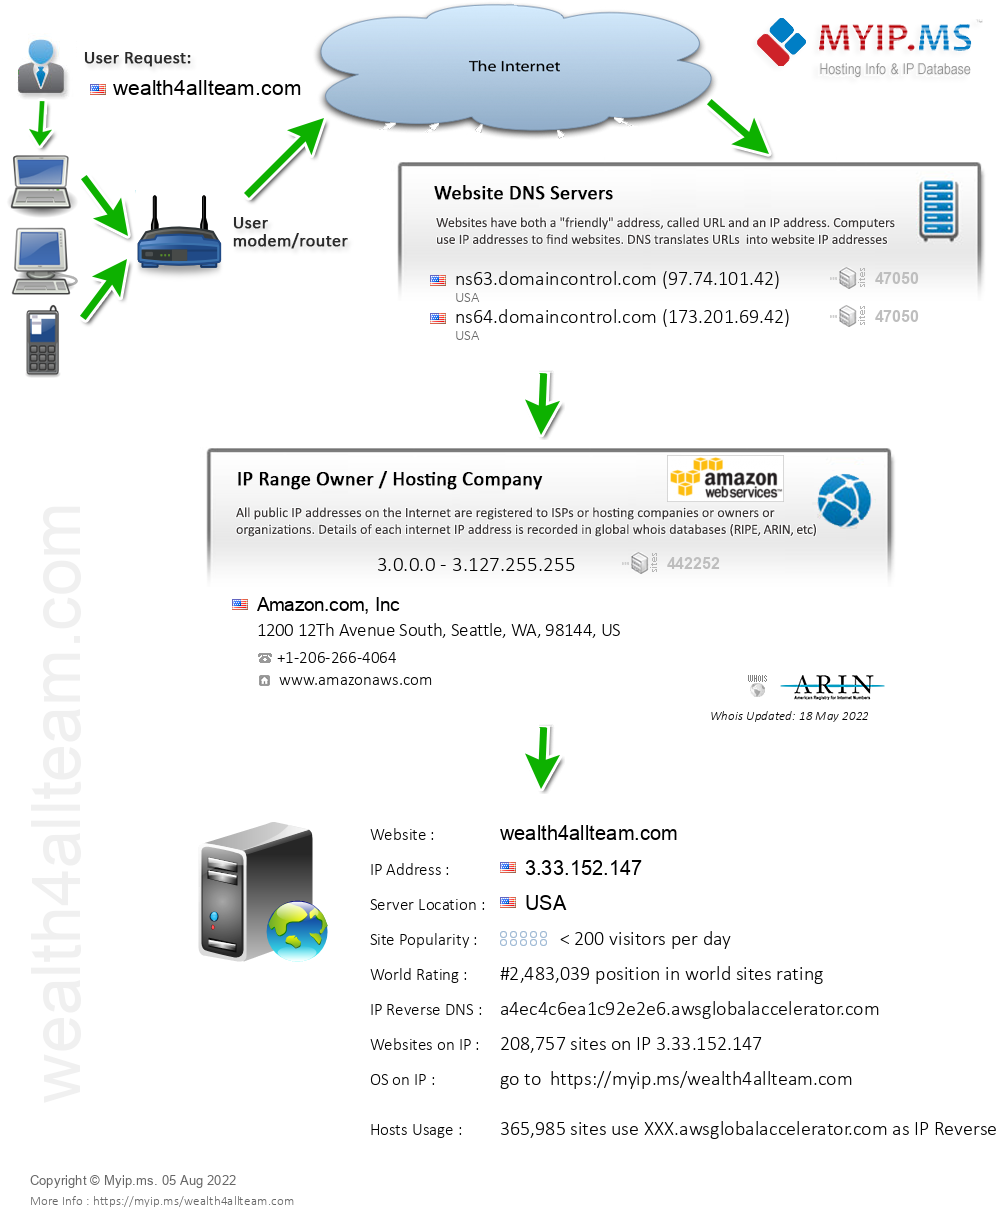 Wealth4allteam.com - Website Hosting Visual IP Diagram